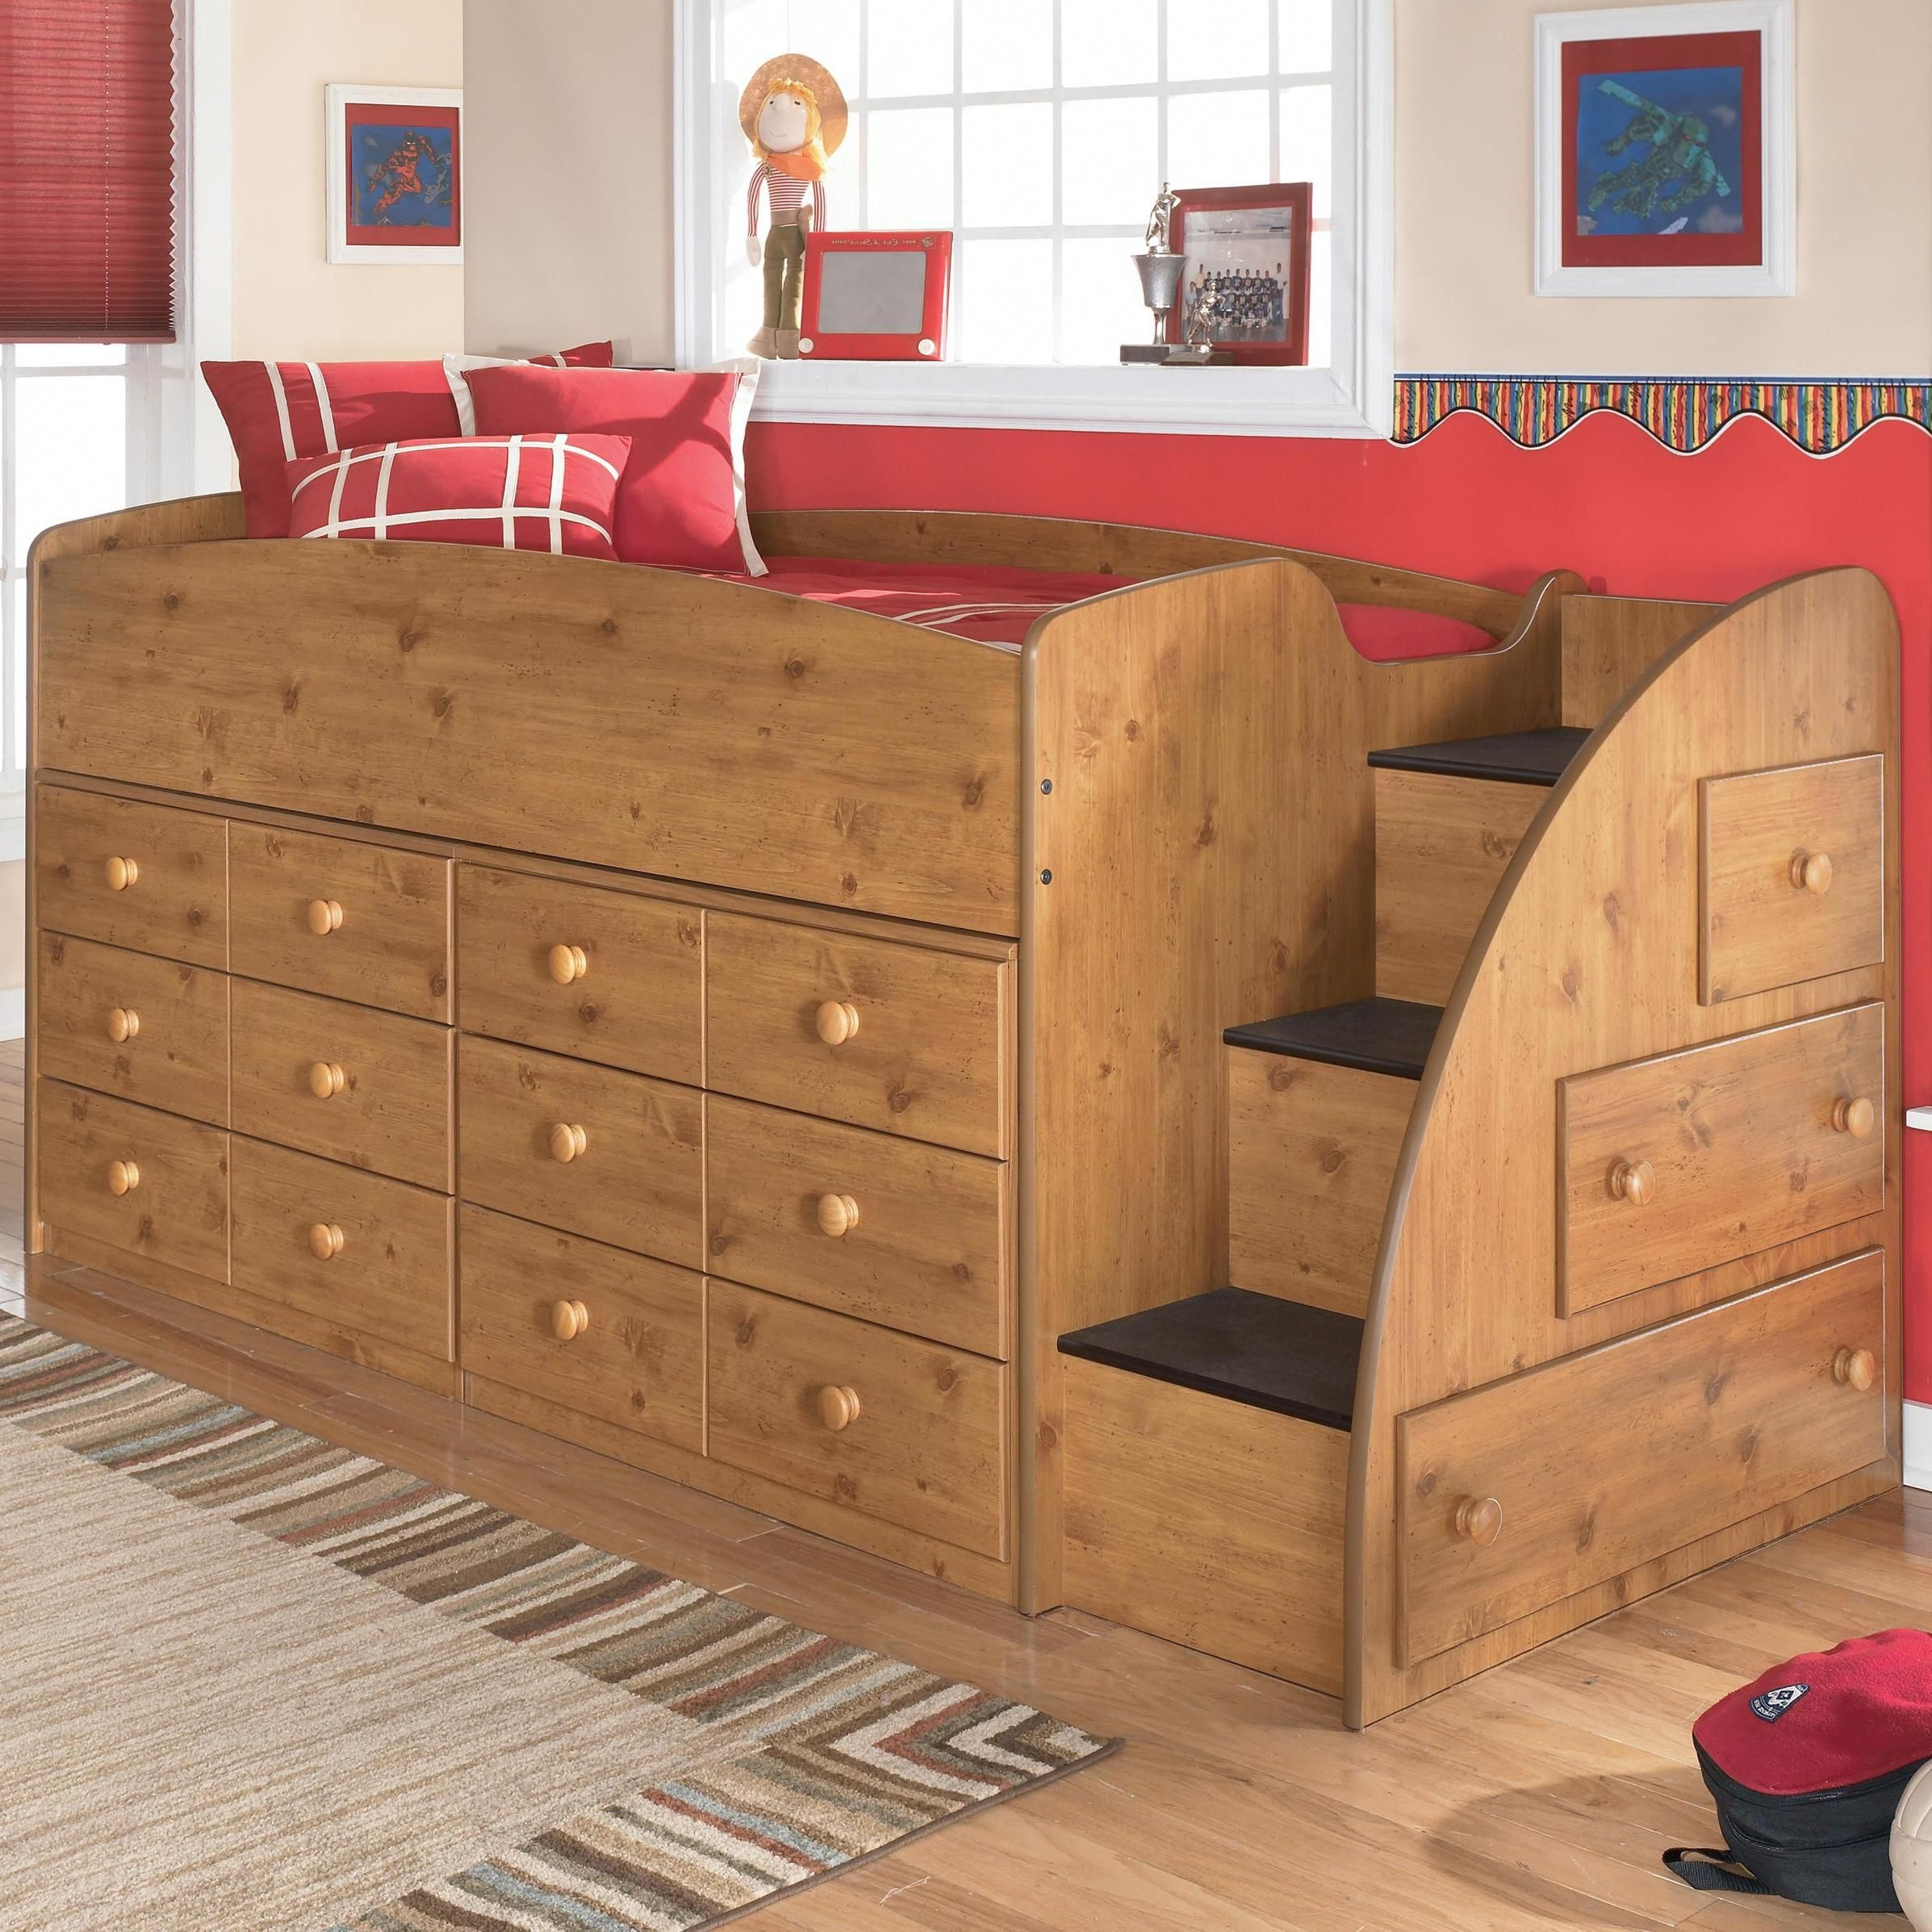 Twin loft bed with storage underneath 12 & Twin Loft Bed With Storage Underneath - Foter